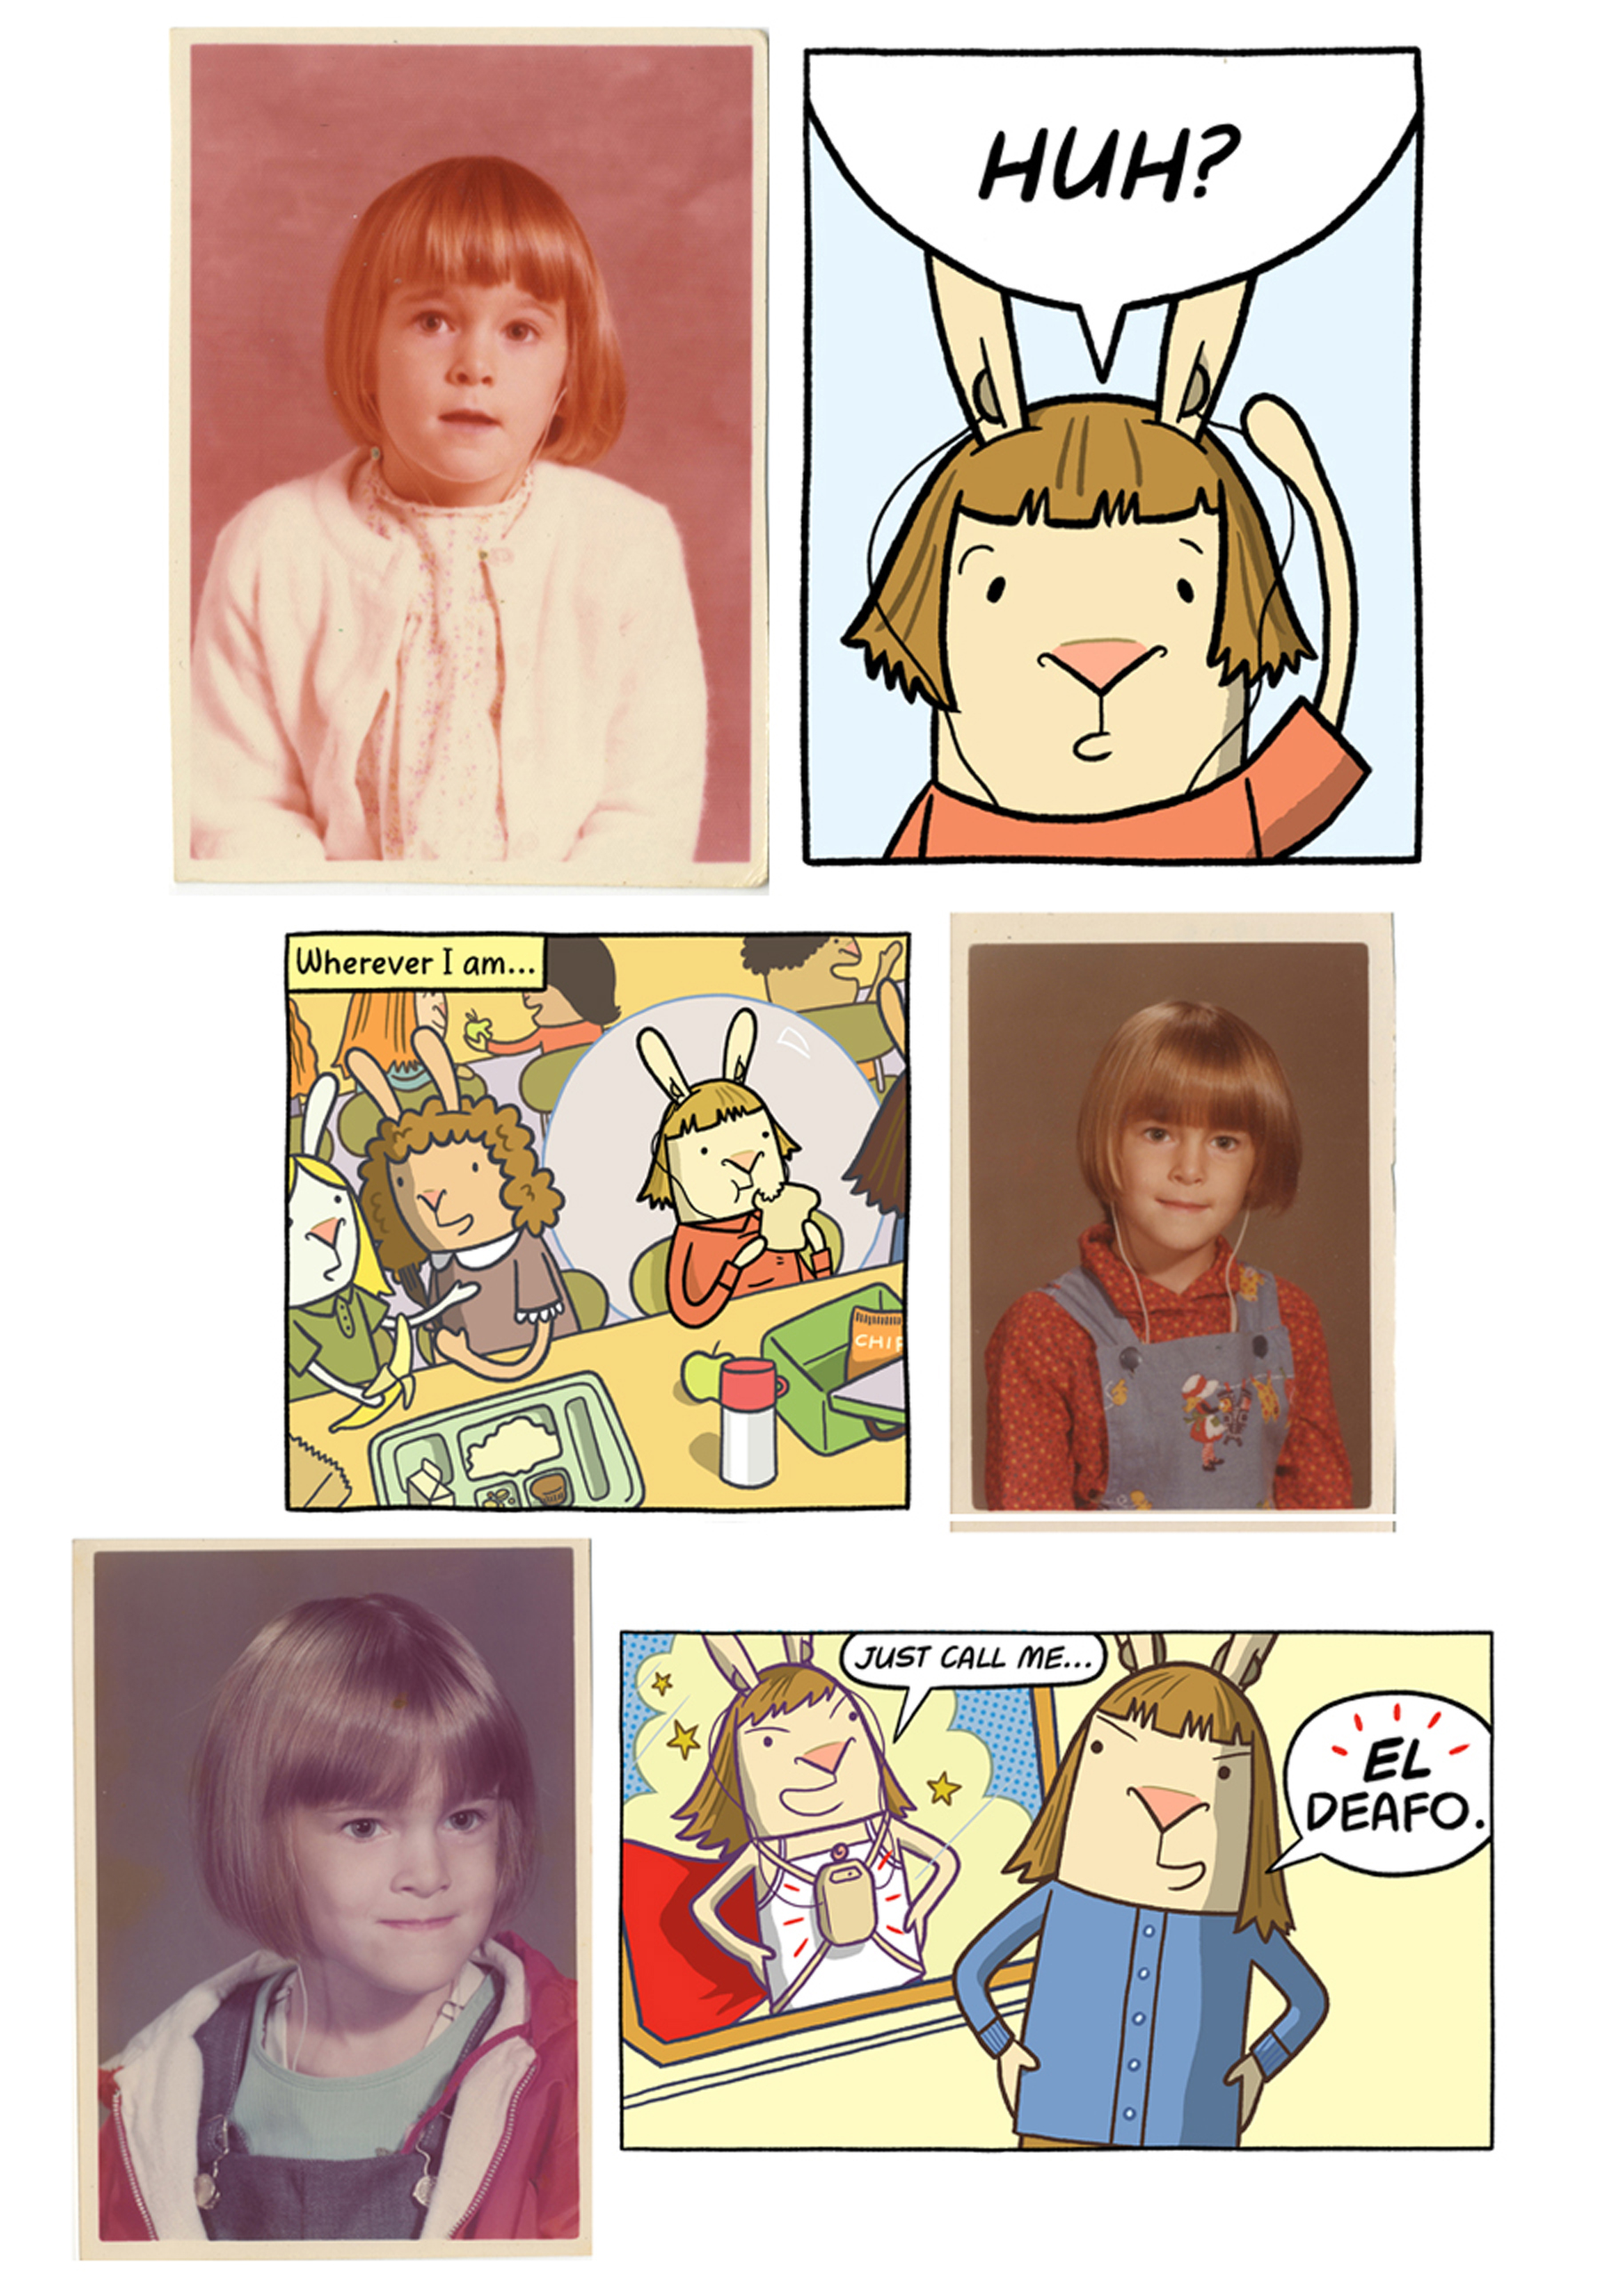 "When the book EL DEAFO begins, Cece is 4. When it ends, she is about 10 or 11. Cece used these photos to help ""age"" the bunny version of herself as the book progresses. Photos and art                      Normal   0           false   false   false     EN-US   JA   X-NONE                                                                                                                                                                                                                                                                                                                                                                               /* Style Definitions */ table.MsoNormalTable 	{mso-style-name:""Table Normal""; 	mso-tstyle-rowband-size:0; 	mso-tstyle-colband-size:0; 	mso-style-noshow:yes; 	mso-style-priority:99; 	mso-style-parent:""""; 	mso-padding-alt:0in 5.4pt 0in 5.4pt; 	mso-para-margin:0in; 	mso-para-margin-bottom:.0001pt; 	mso-pagination:widow-orphan; 	font-size:12.0pt; 	font-family:Cambria; 	mso-ascii-font-family:Cambria; 	mso-ascii-theme-font:minor-latin; 	mso-hansi-font-family:Cambria; 	mso-hansi-theme-font:minor-latin;}      © Cece Bell."